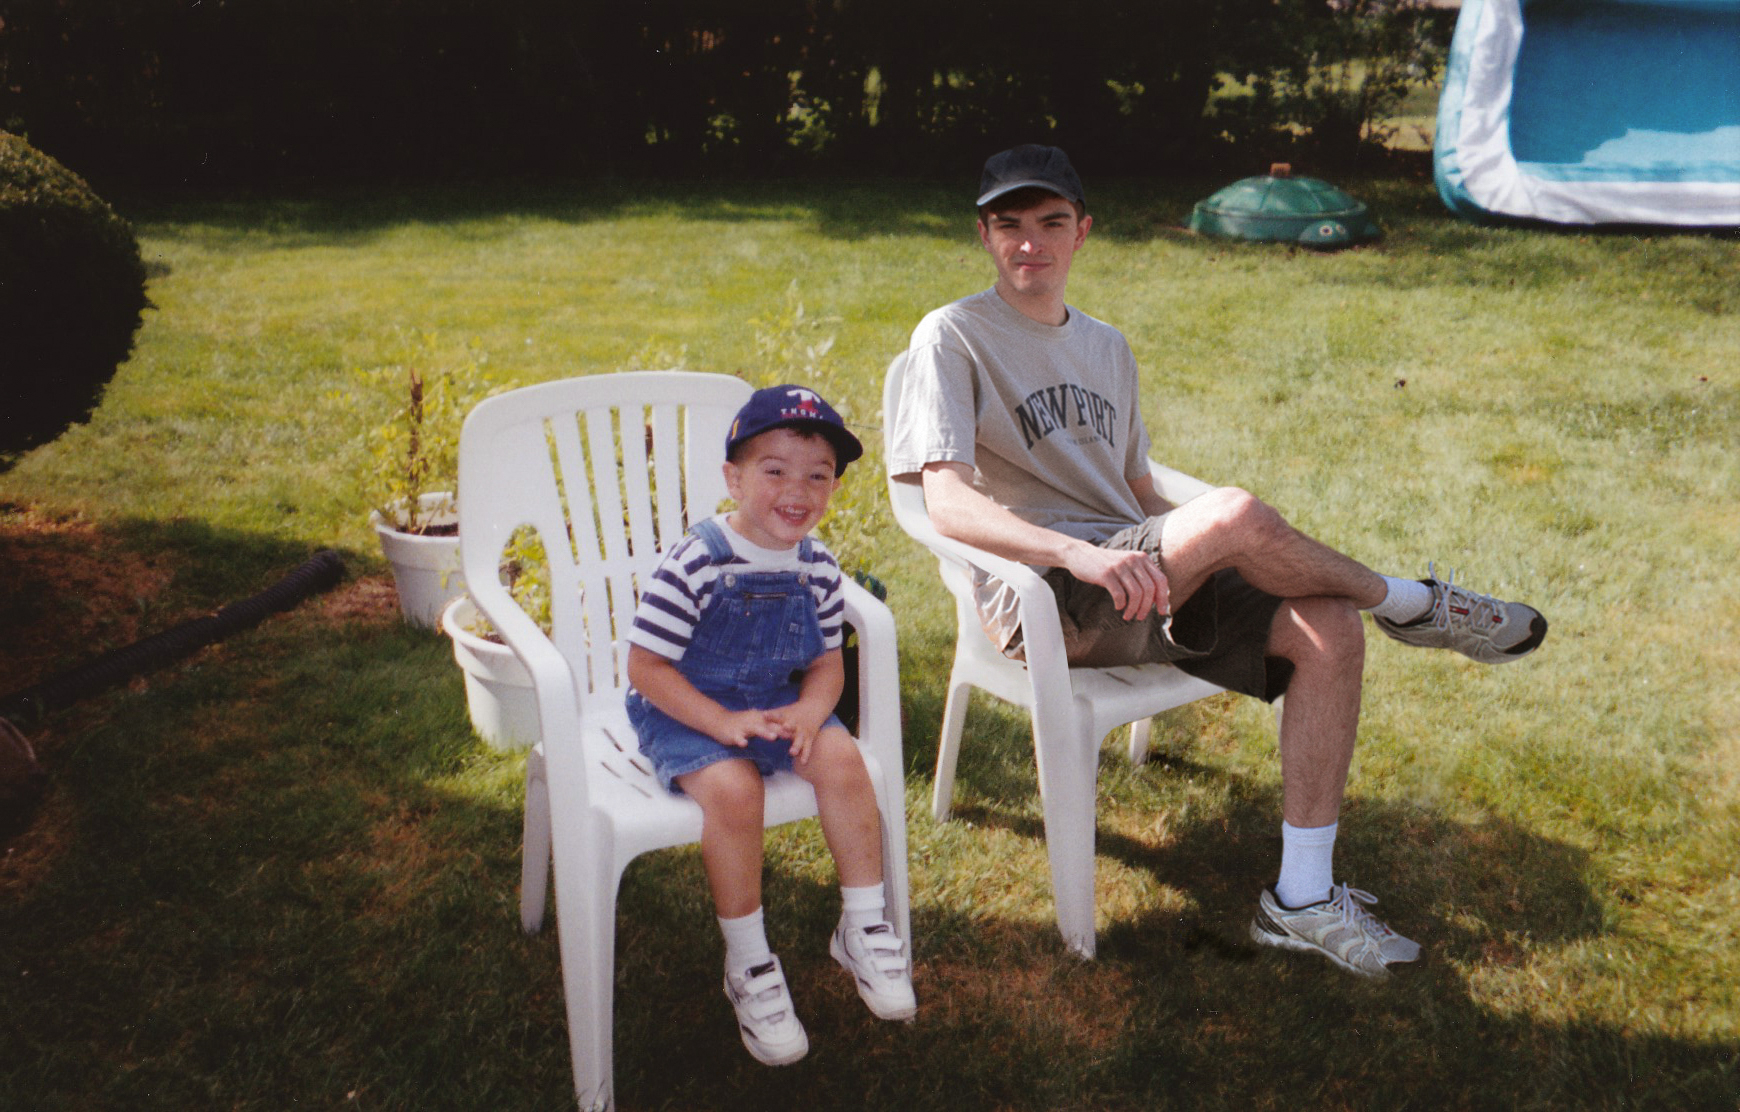 Conor and his younger self on chairs outside